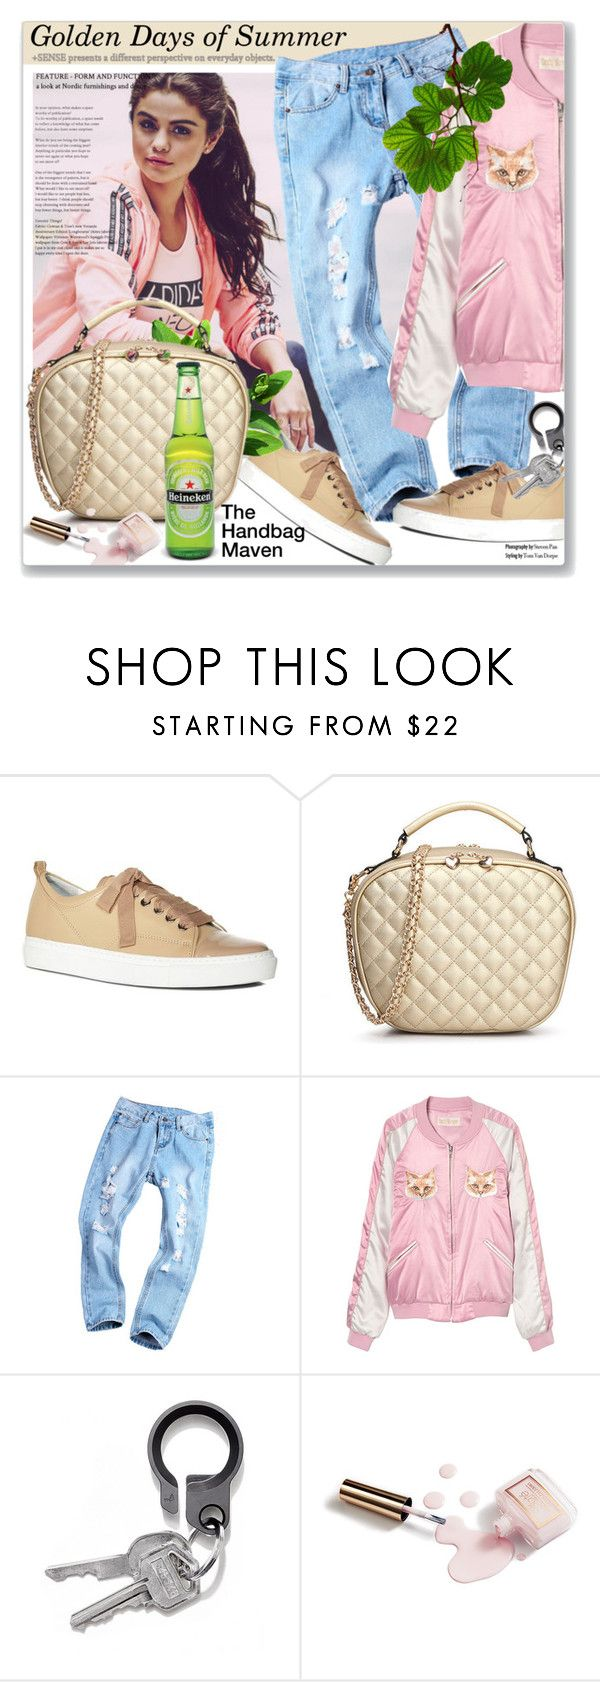 """""""The Golden Days of Summer"""" by paulioo ❤ liked on Polyvore featuring adidas NEO, Lanvin, Ciaté, daria, TheHandbagMaven and goldendaysofsummer"""